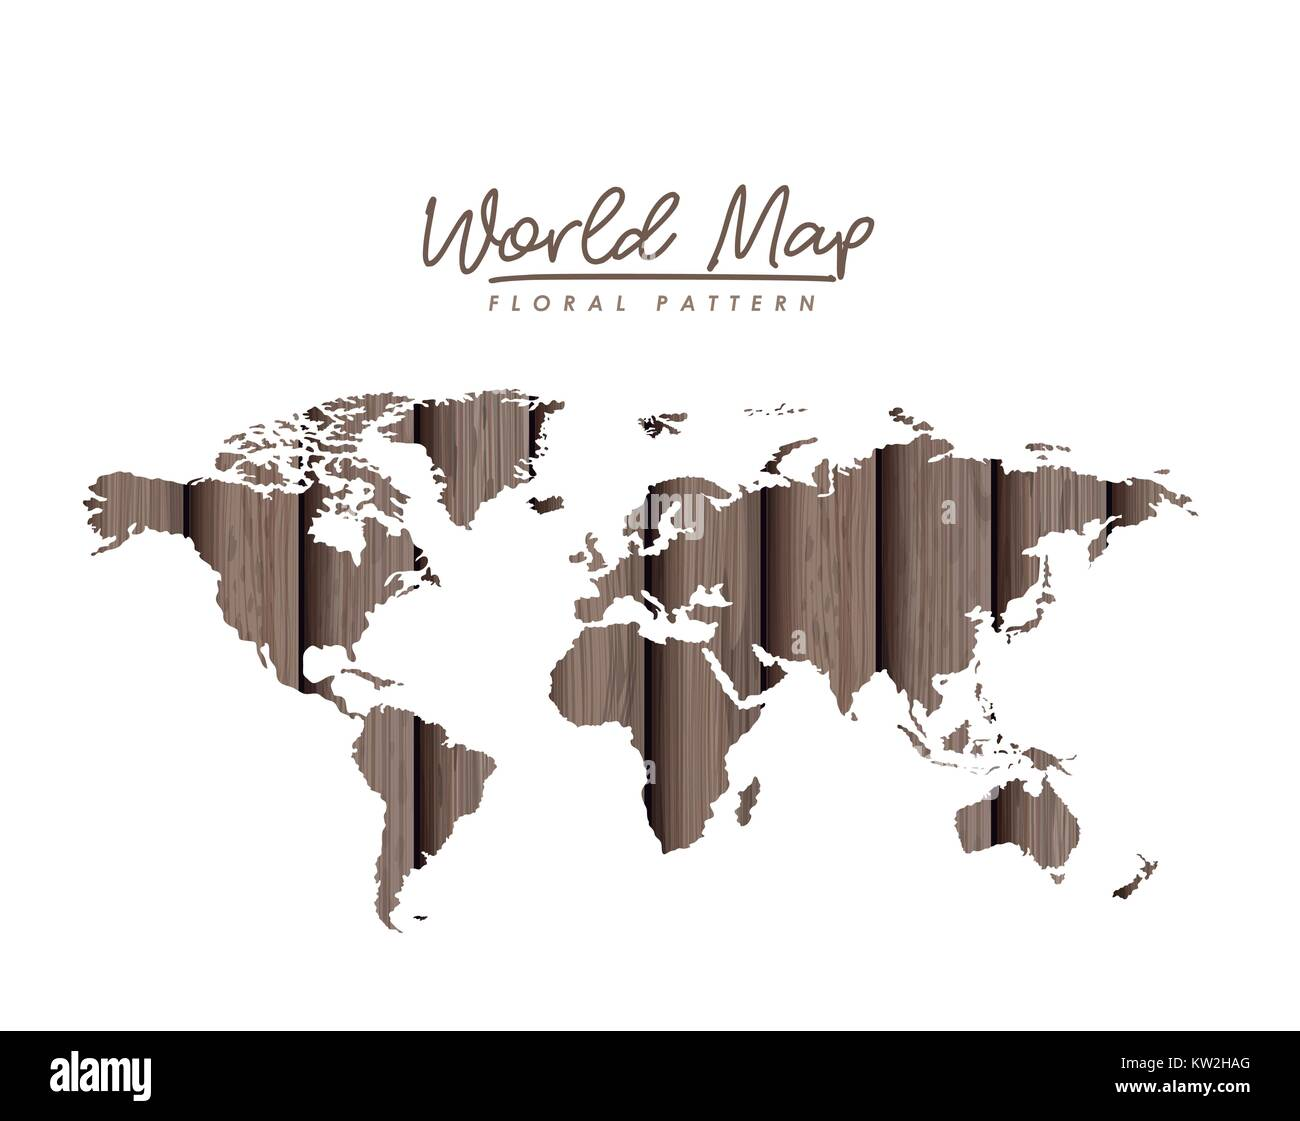 World map floral pattern with gray wood lines on white background world map floral pattern with gray wood lines on white background gumiabroncs Images